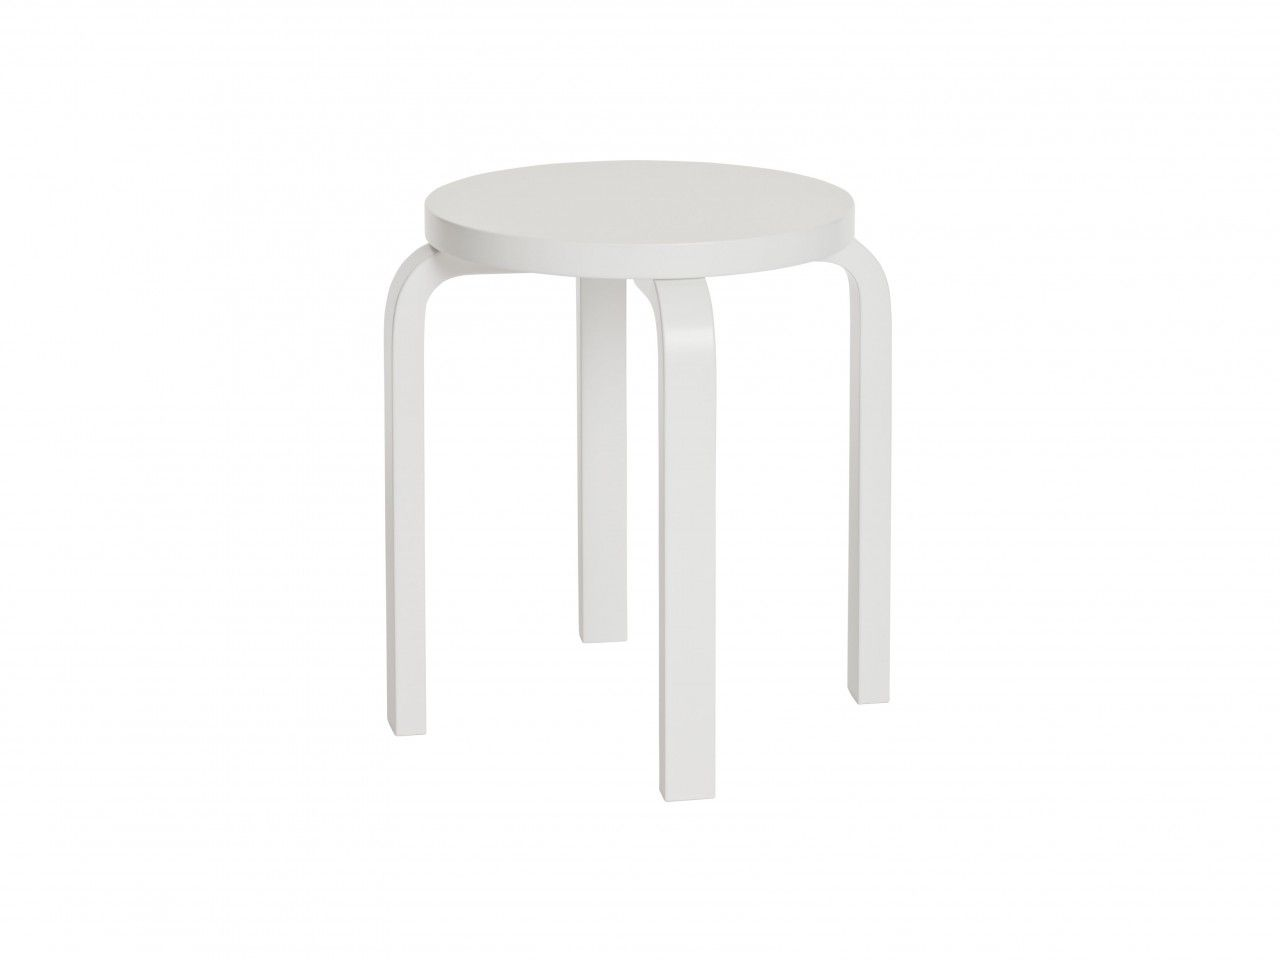 artek  products  chairs  stool e the kind of stool used in  - artek  products  chairs  stool e the kind of stool used in apple